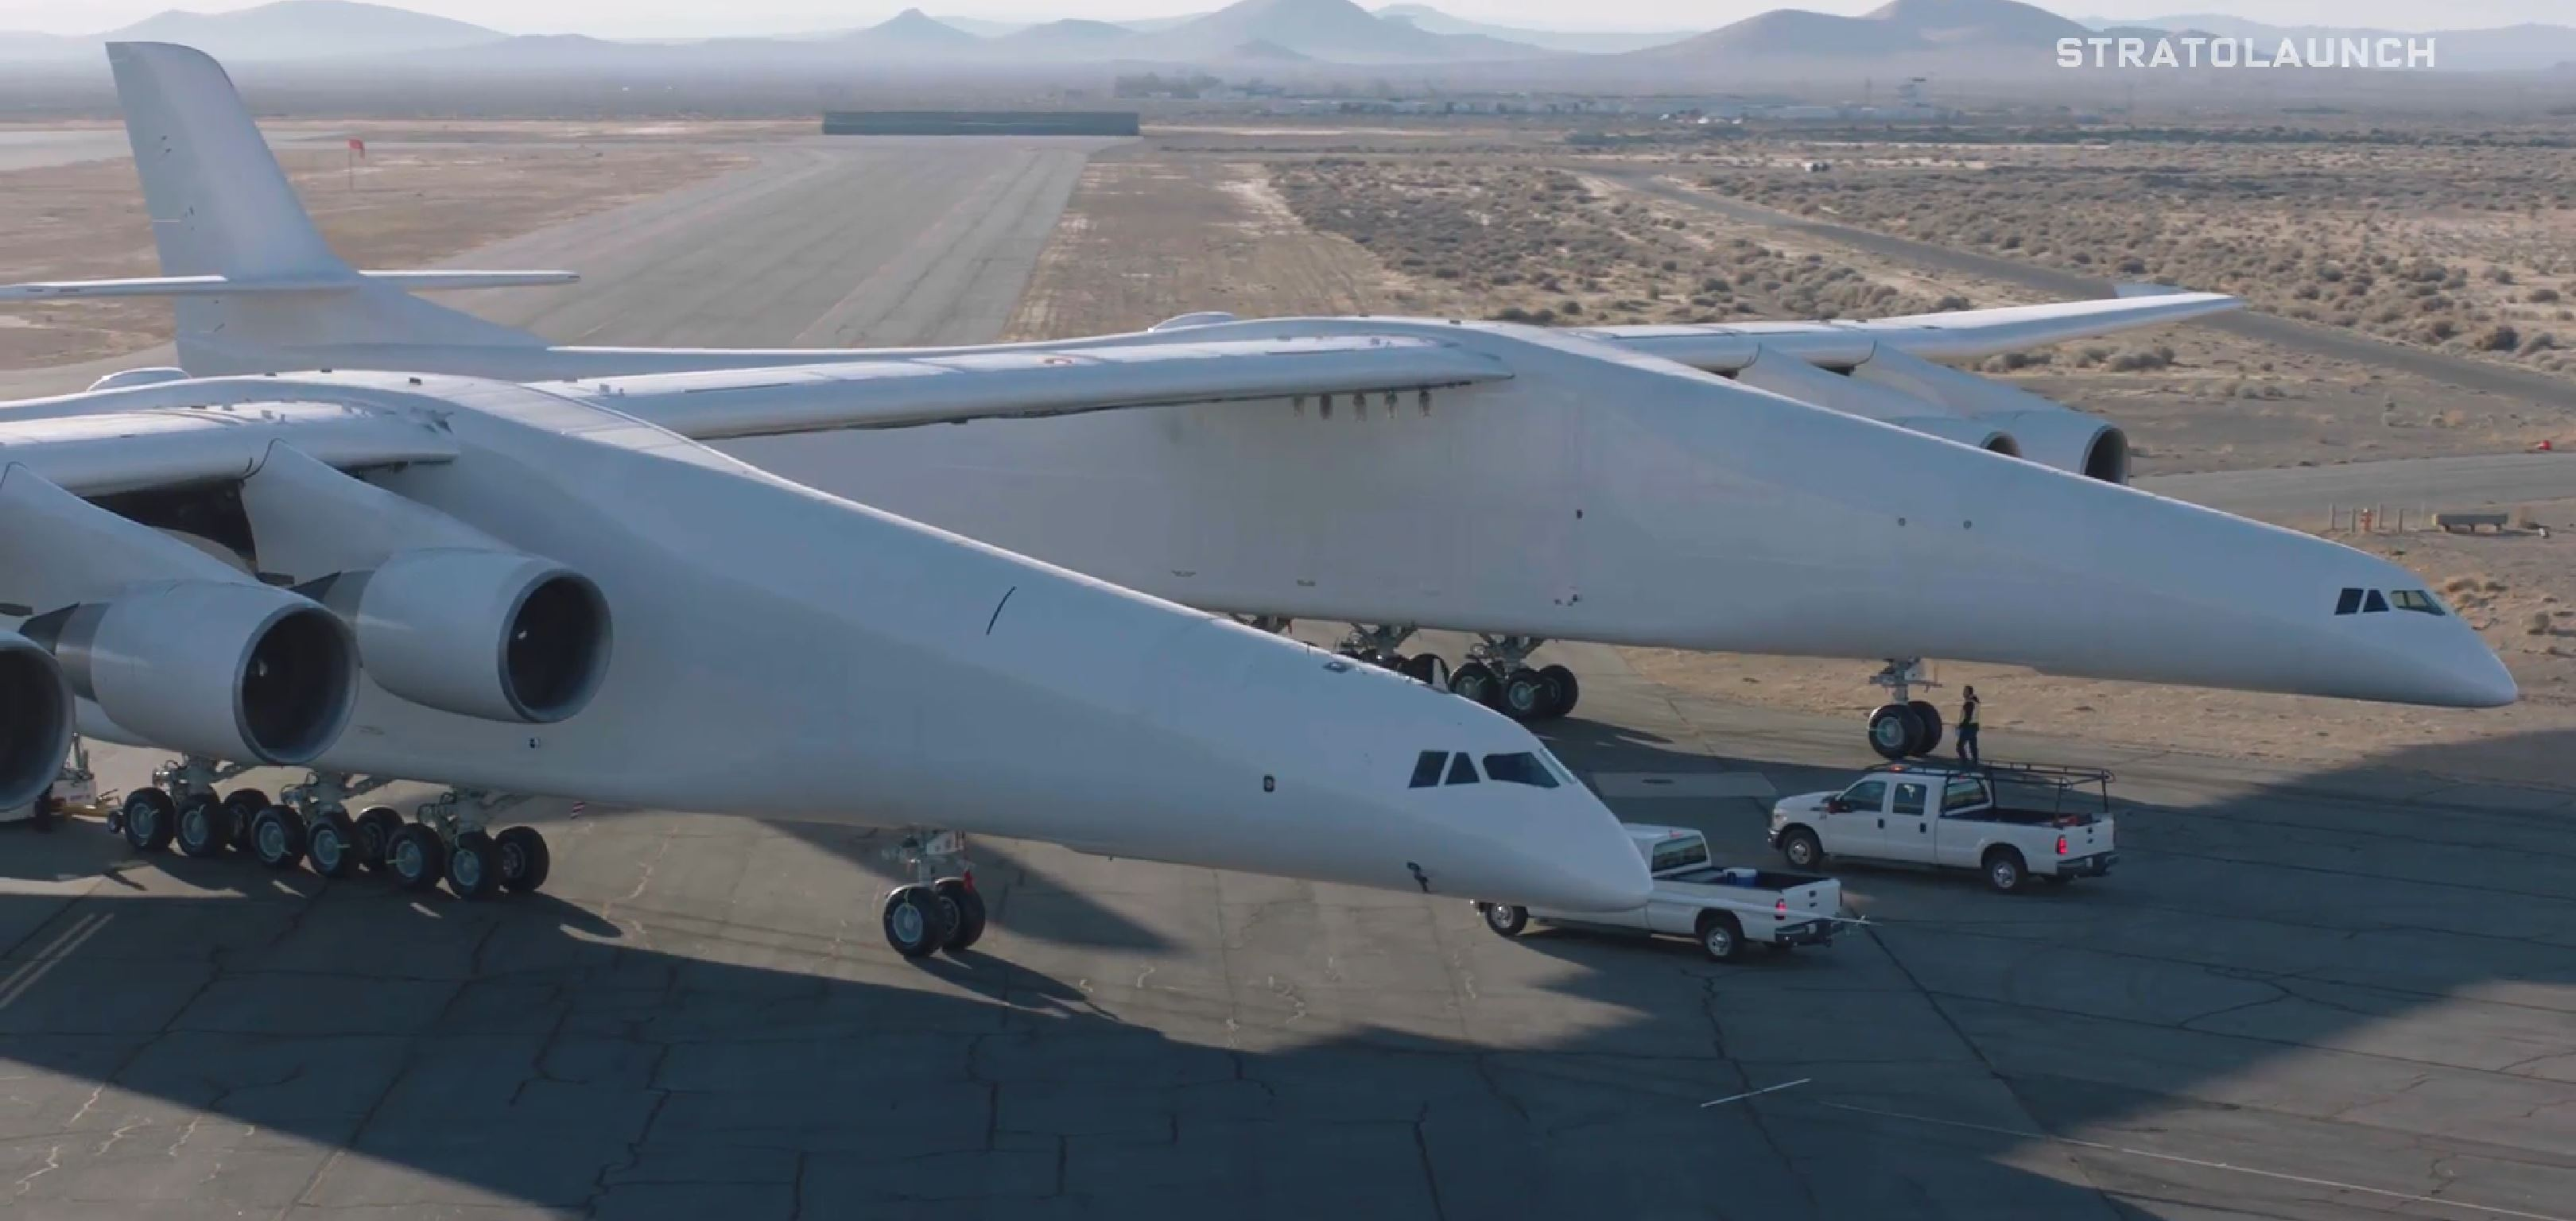 Stratolaunch Roc (Stratolaunch) 9